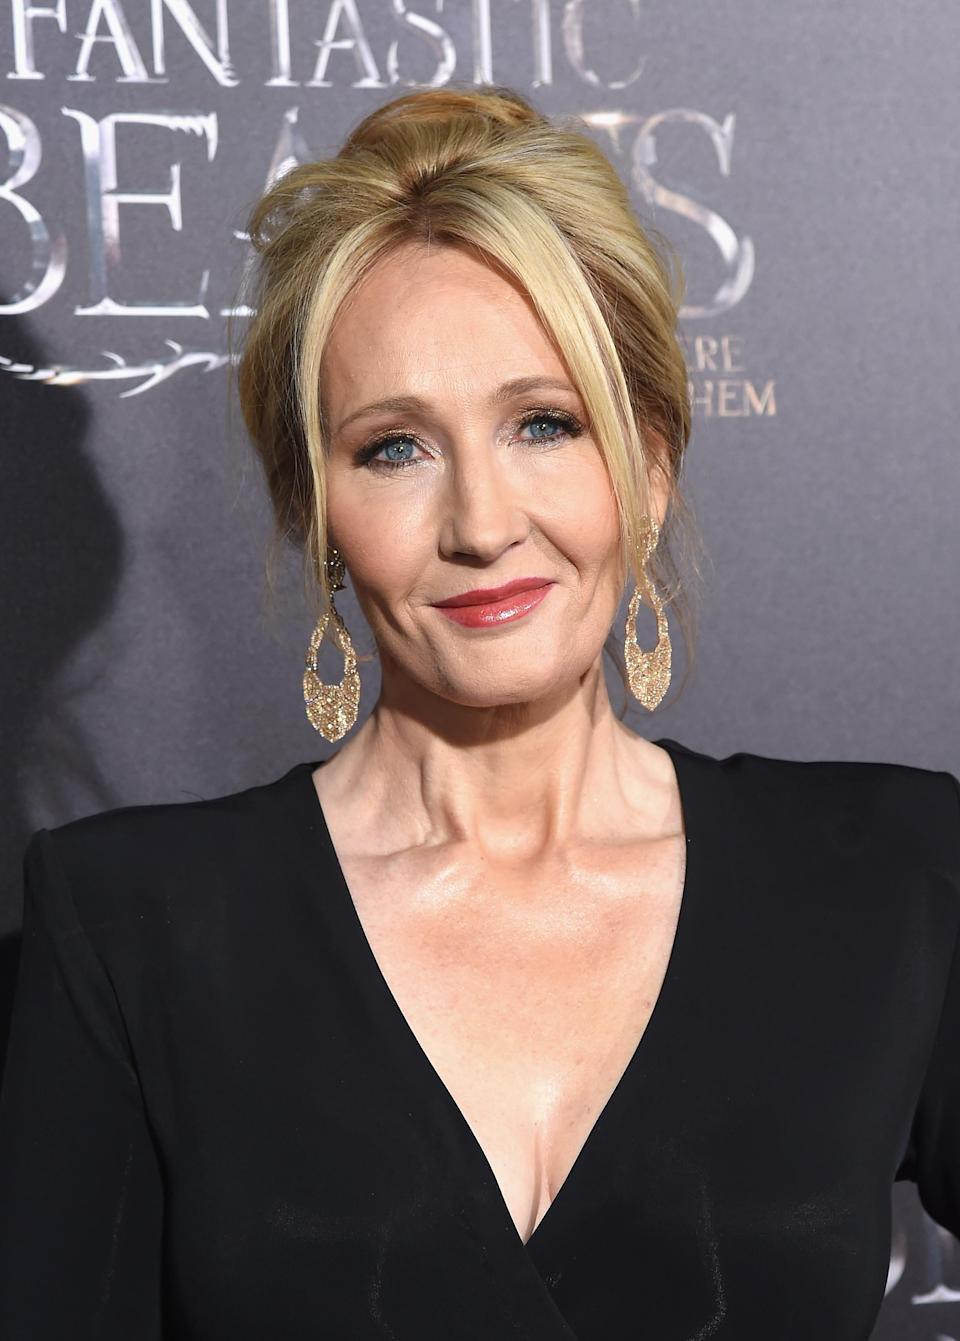 J.K. Rowling was moved by single dad Matt Burke's story. (Photo: Jamie McCarthy/Getty Images)